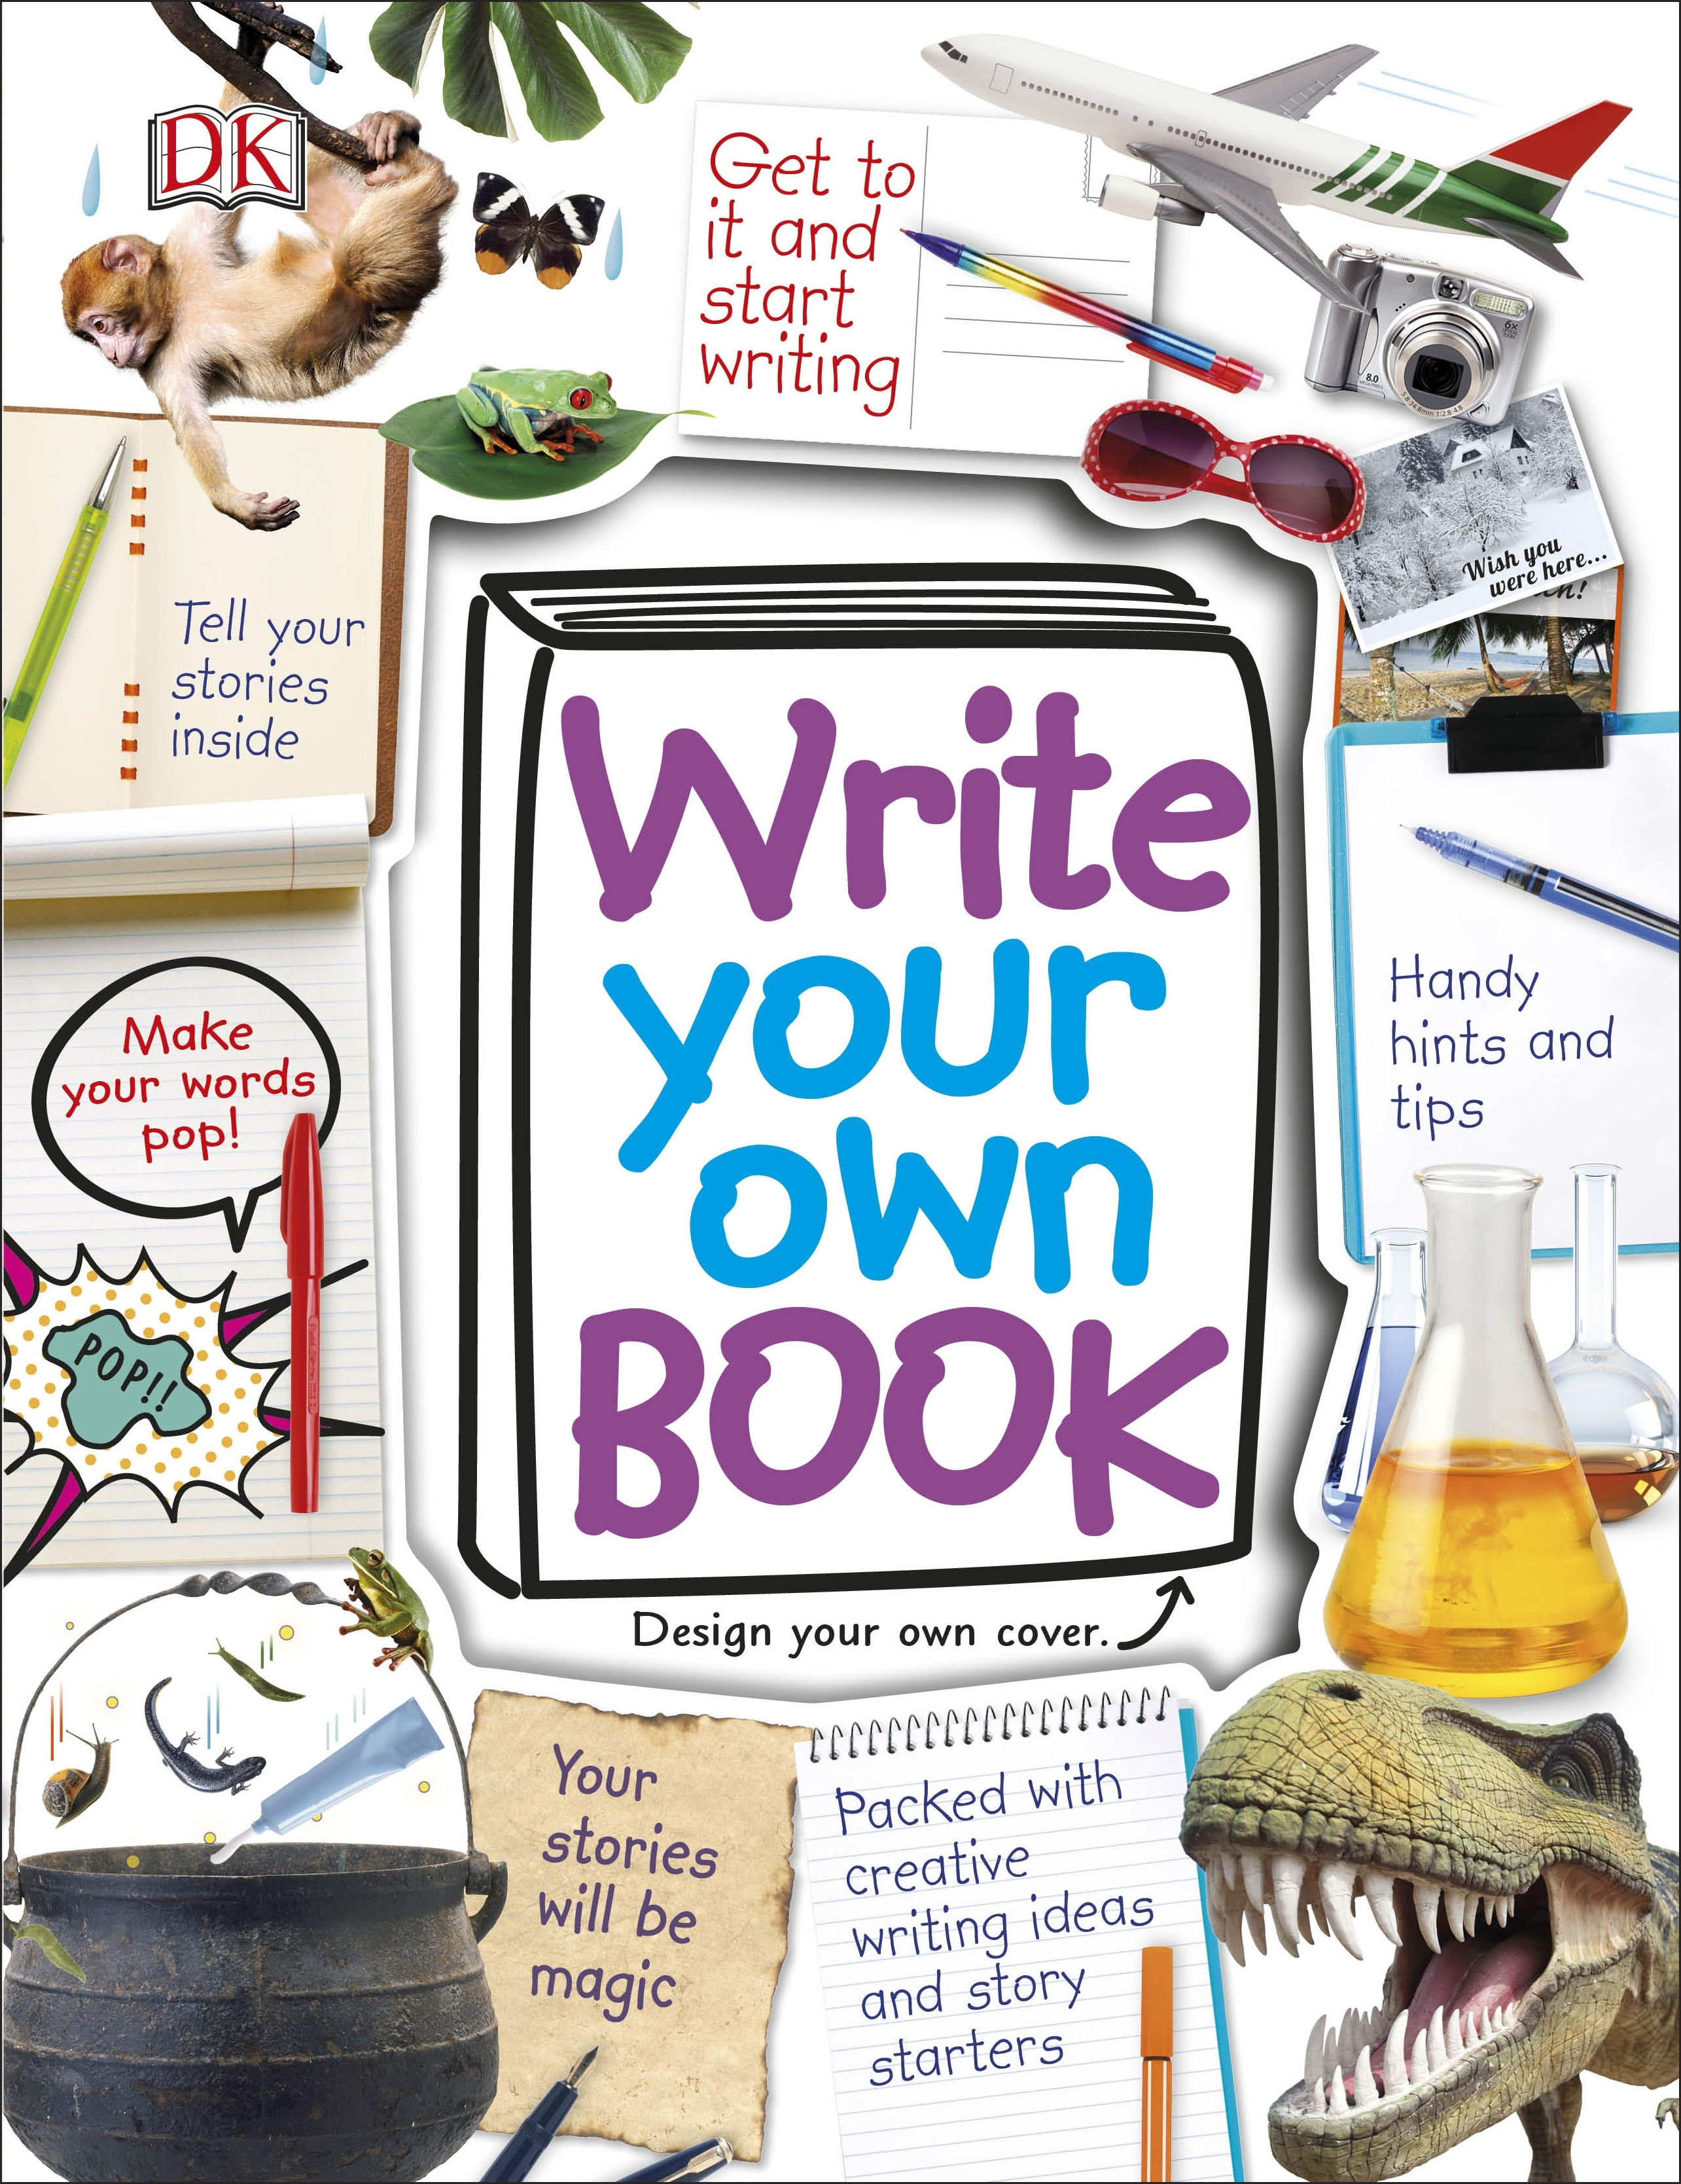 Penguin Book Cover Make Your Own ~ Write your own book by dk penguin books australia